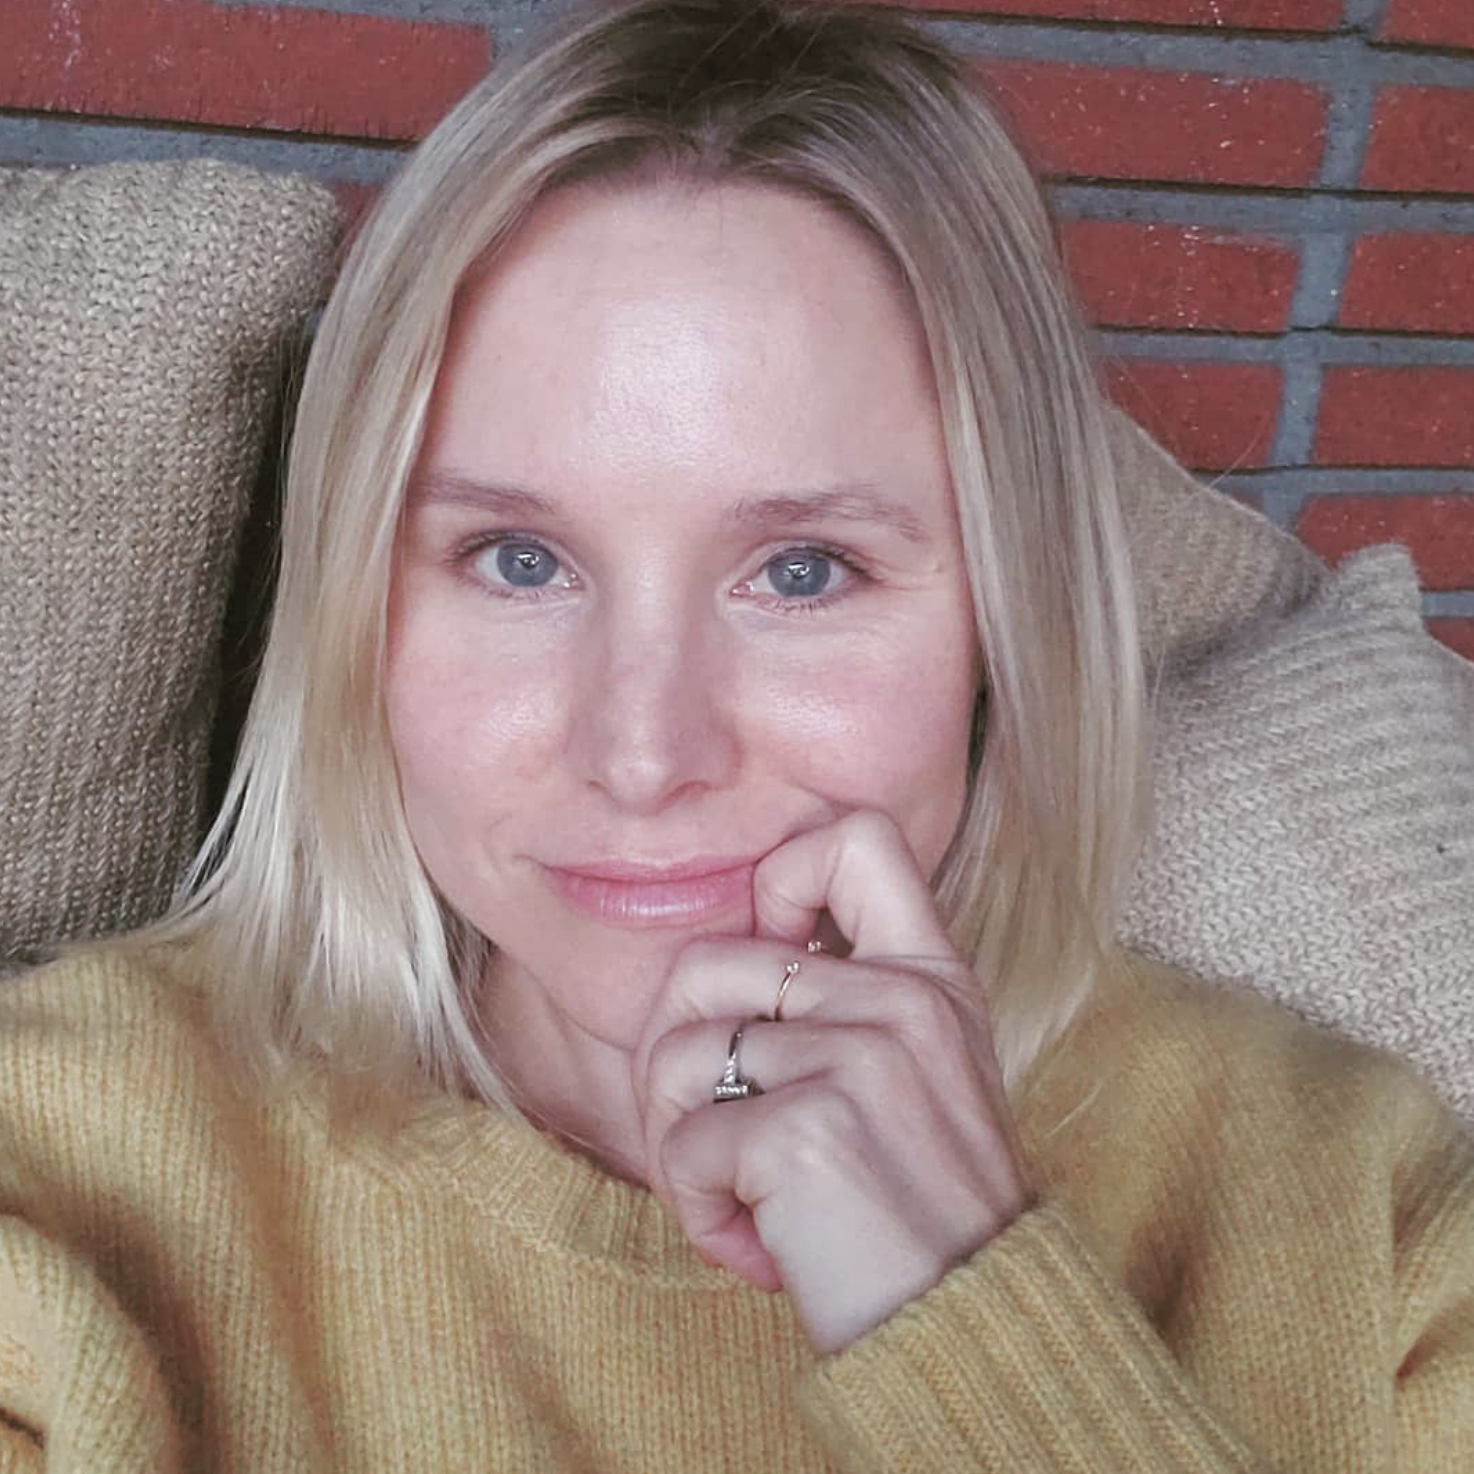 """""""Look, I MAY have just ordered BRIGHT blue colored contacts IN CASE someone invites me to a GAME OF THRONES dress up party, so I can BE PREPARED to go as the DEAD DRAGON. #gameofthrones @gameofthrones""""   Kristen Bell, who posted this selfie on Instagram on March 18, 2019"""